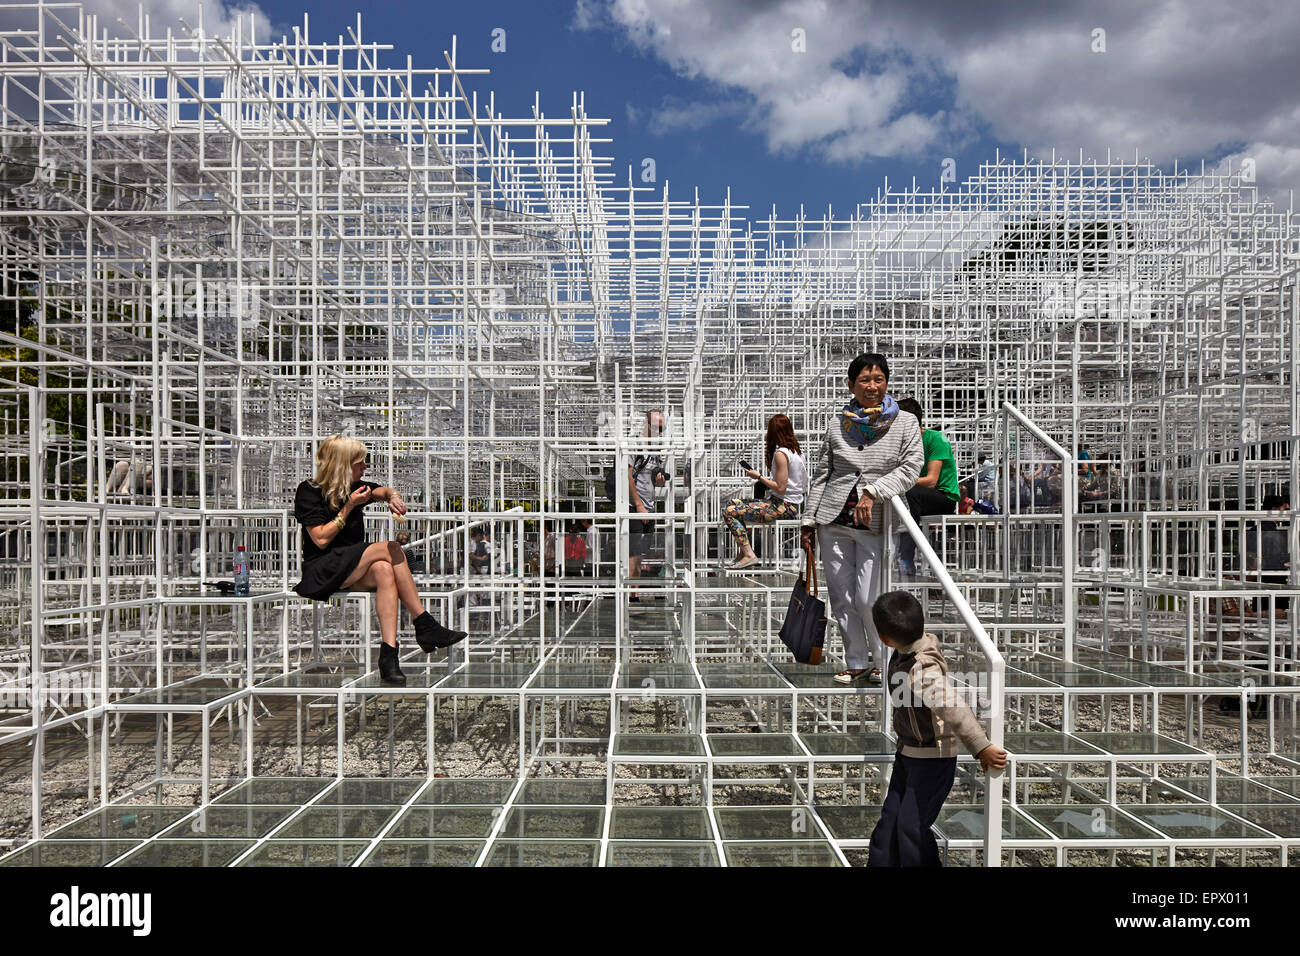 Temporary architectural installation, the Serpentine Pavilion 2013, Kensington Gardens, London, England, UK - Stock Image